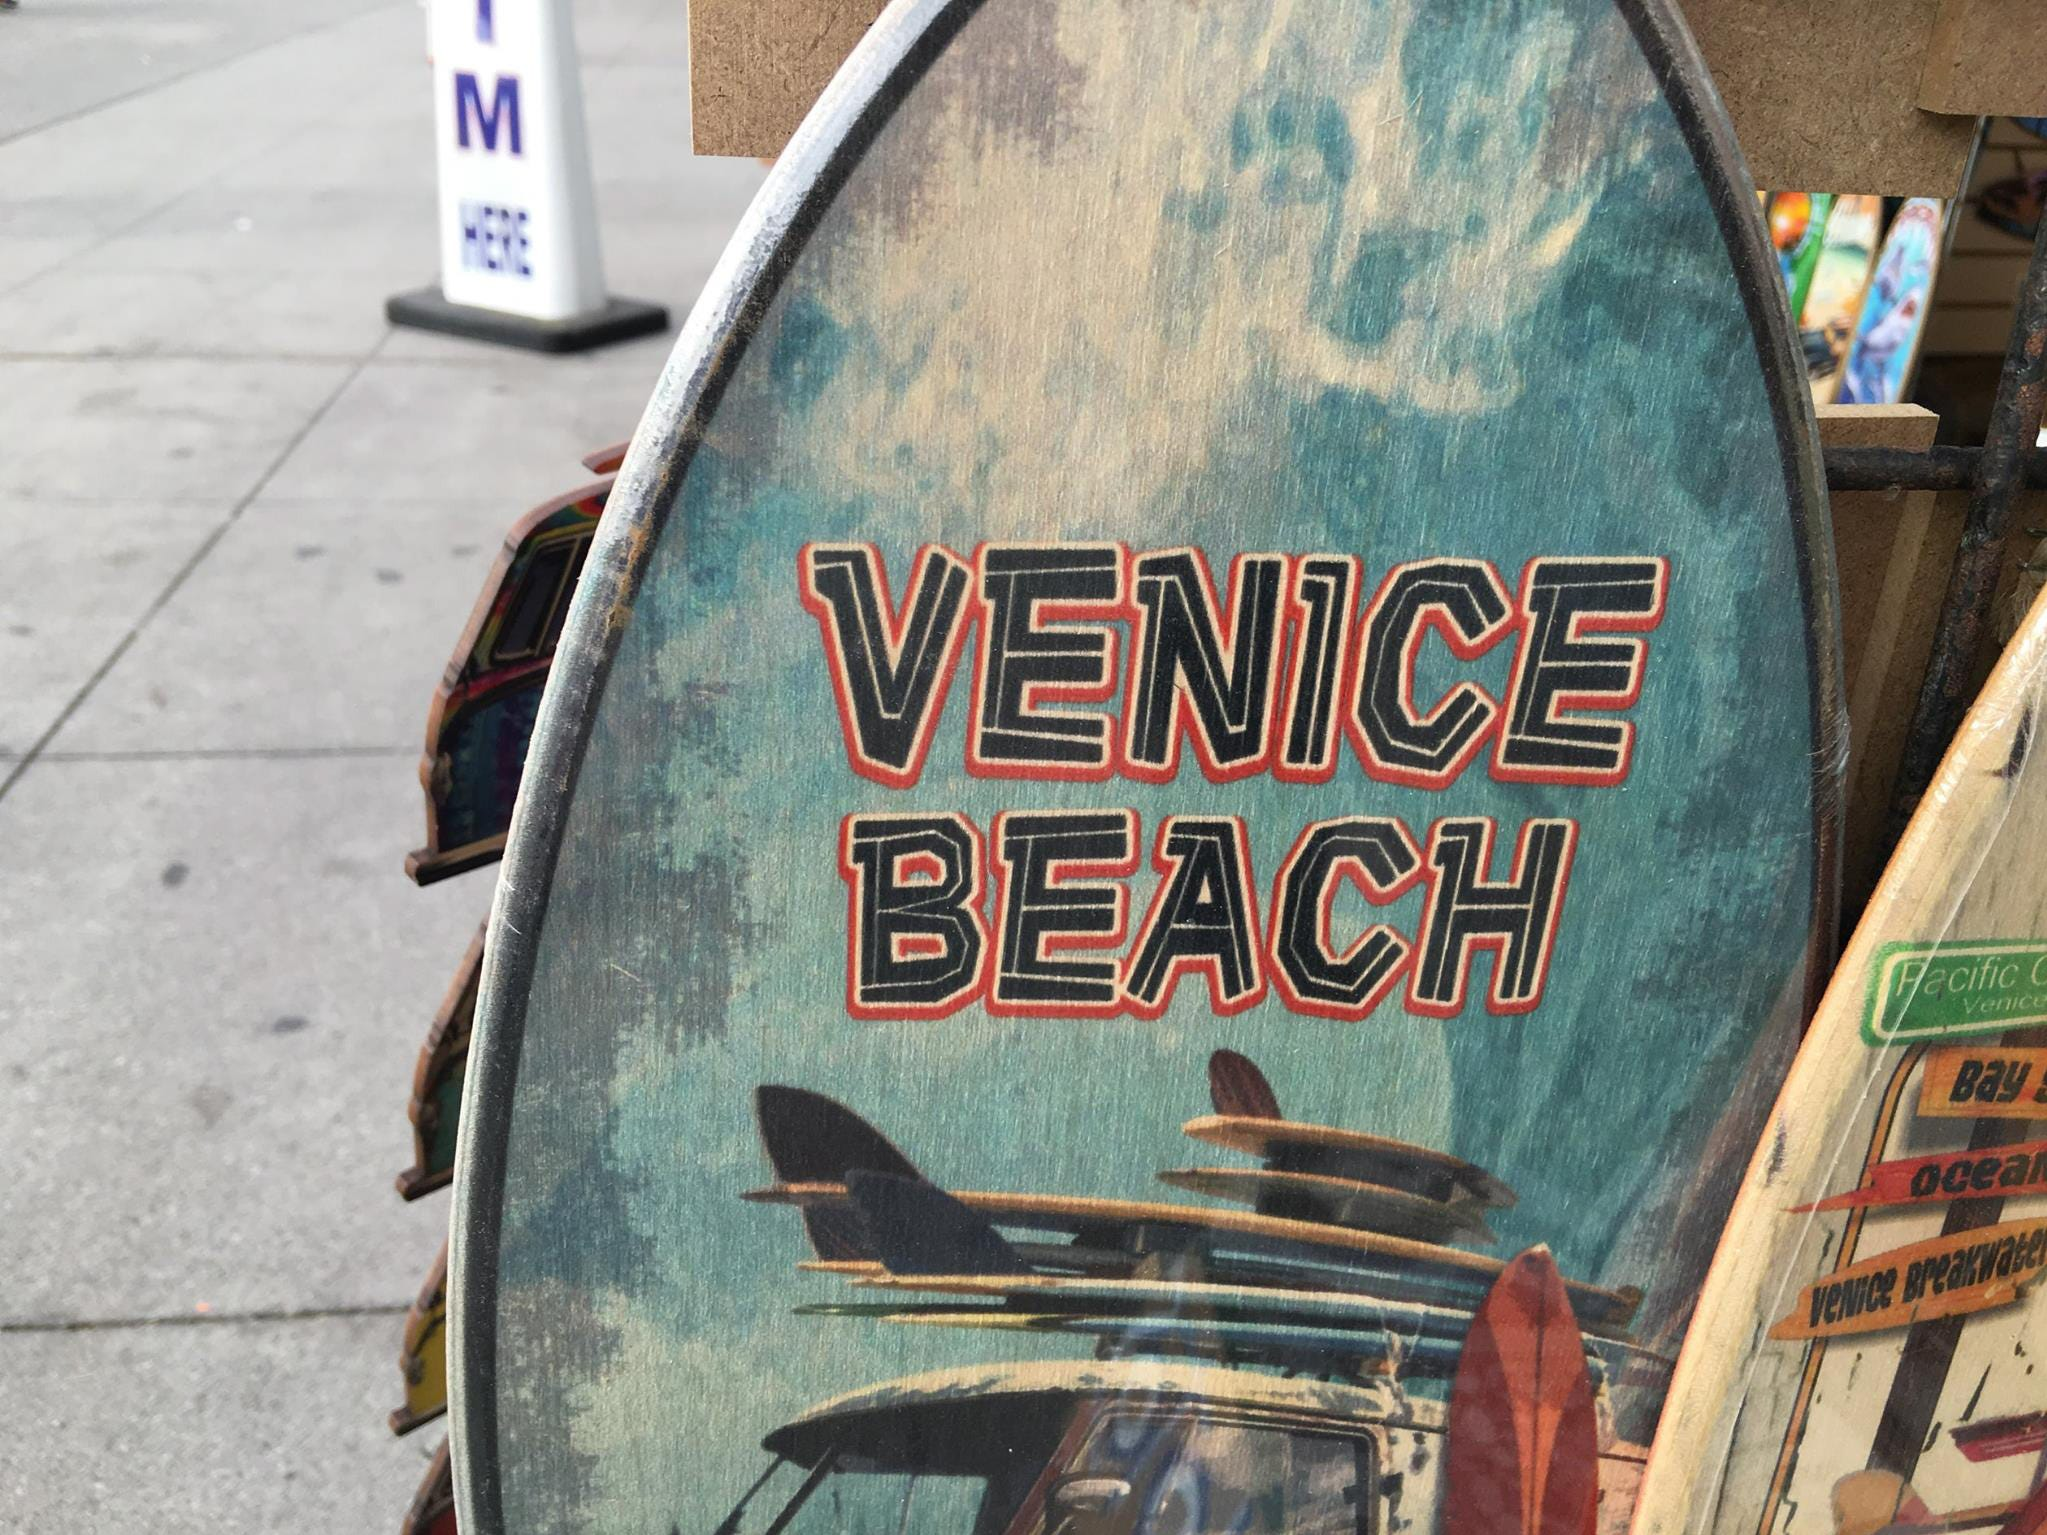 A Venice Beach painted surfboard for sale.